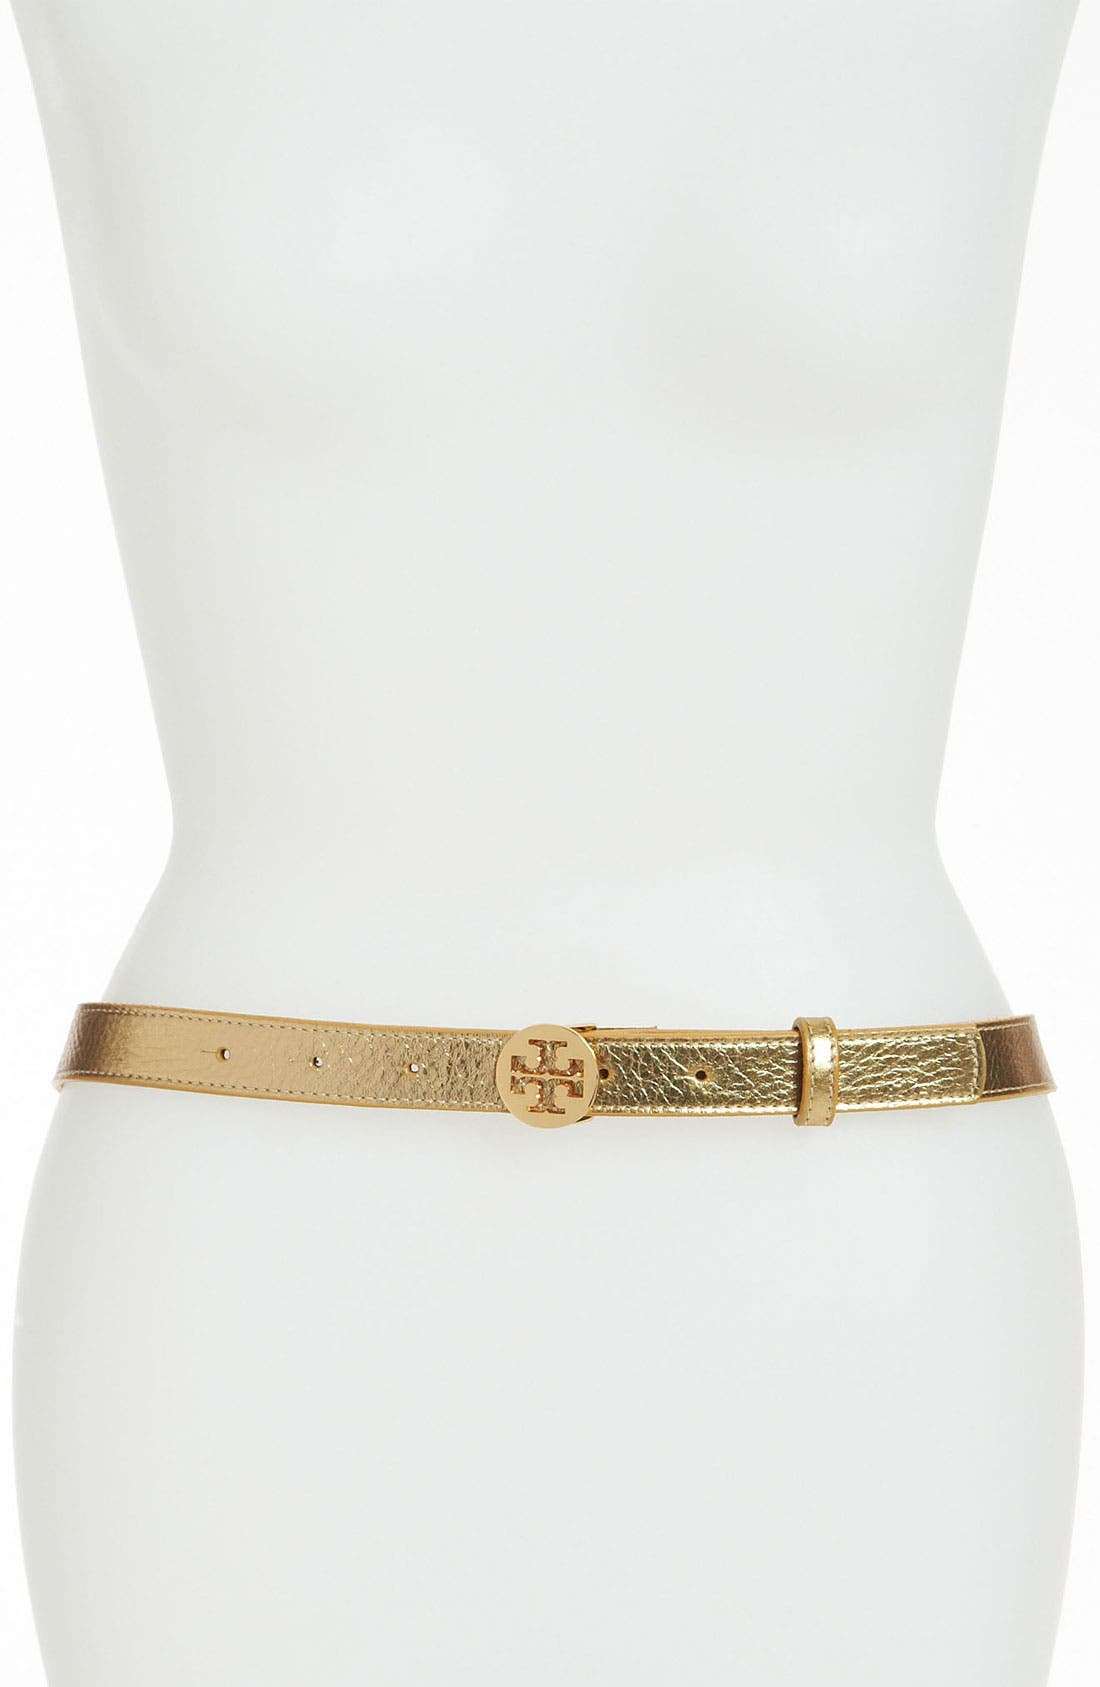 Alternate Image 1 Selected - Tory Burch 'Tory Logo' Metallic Leather Belt